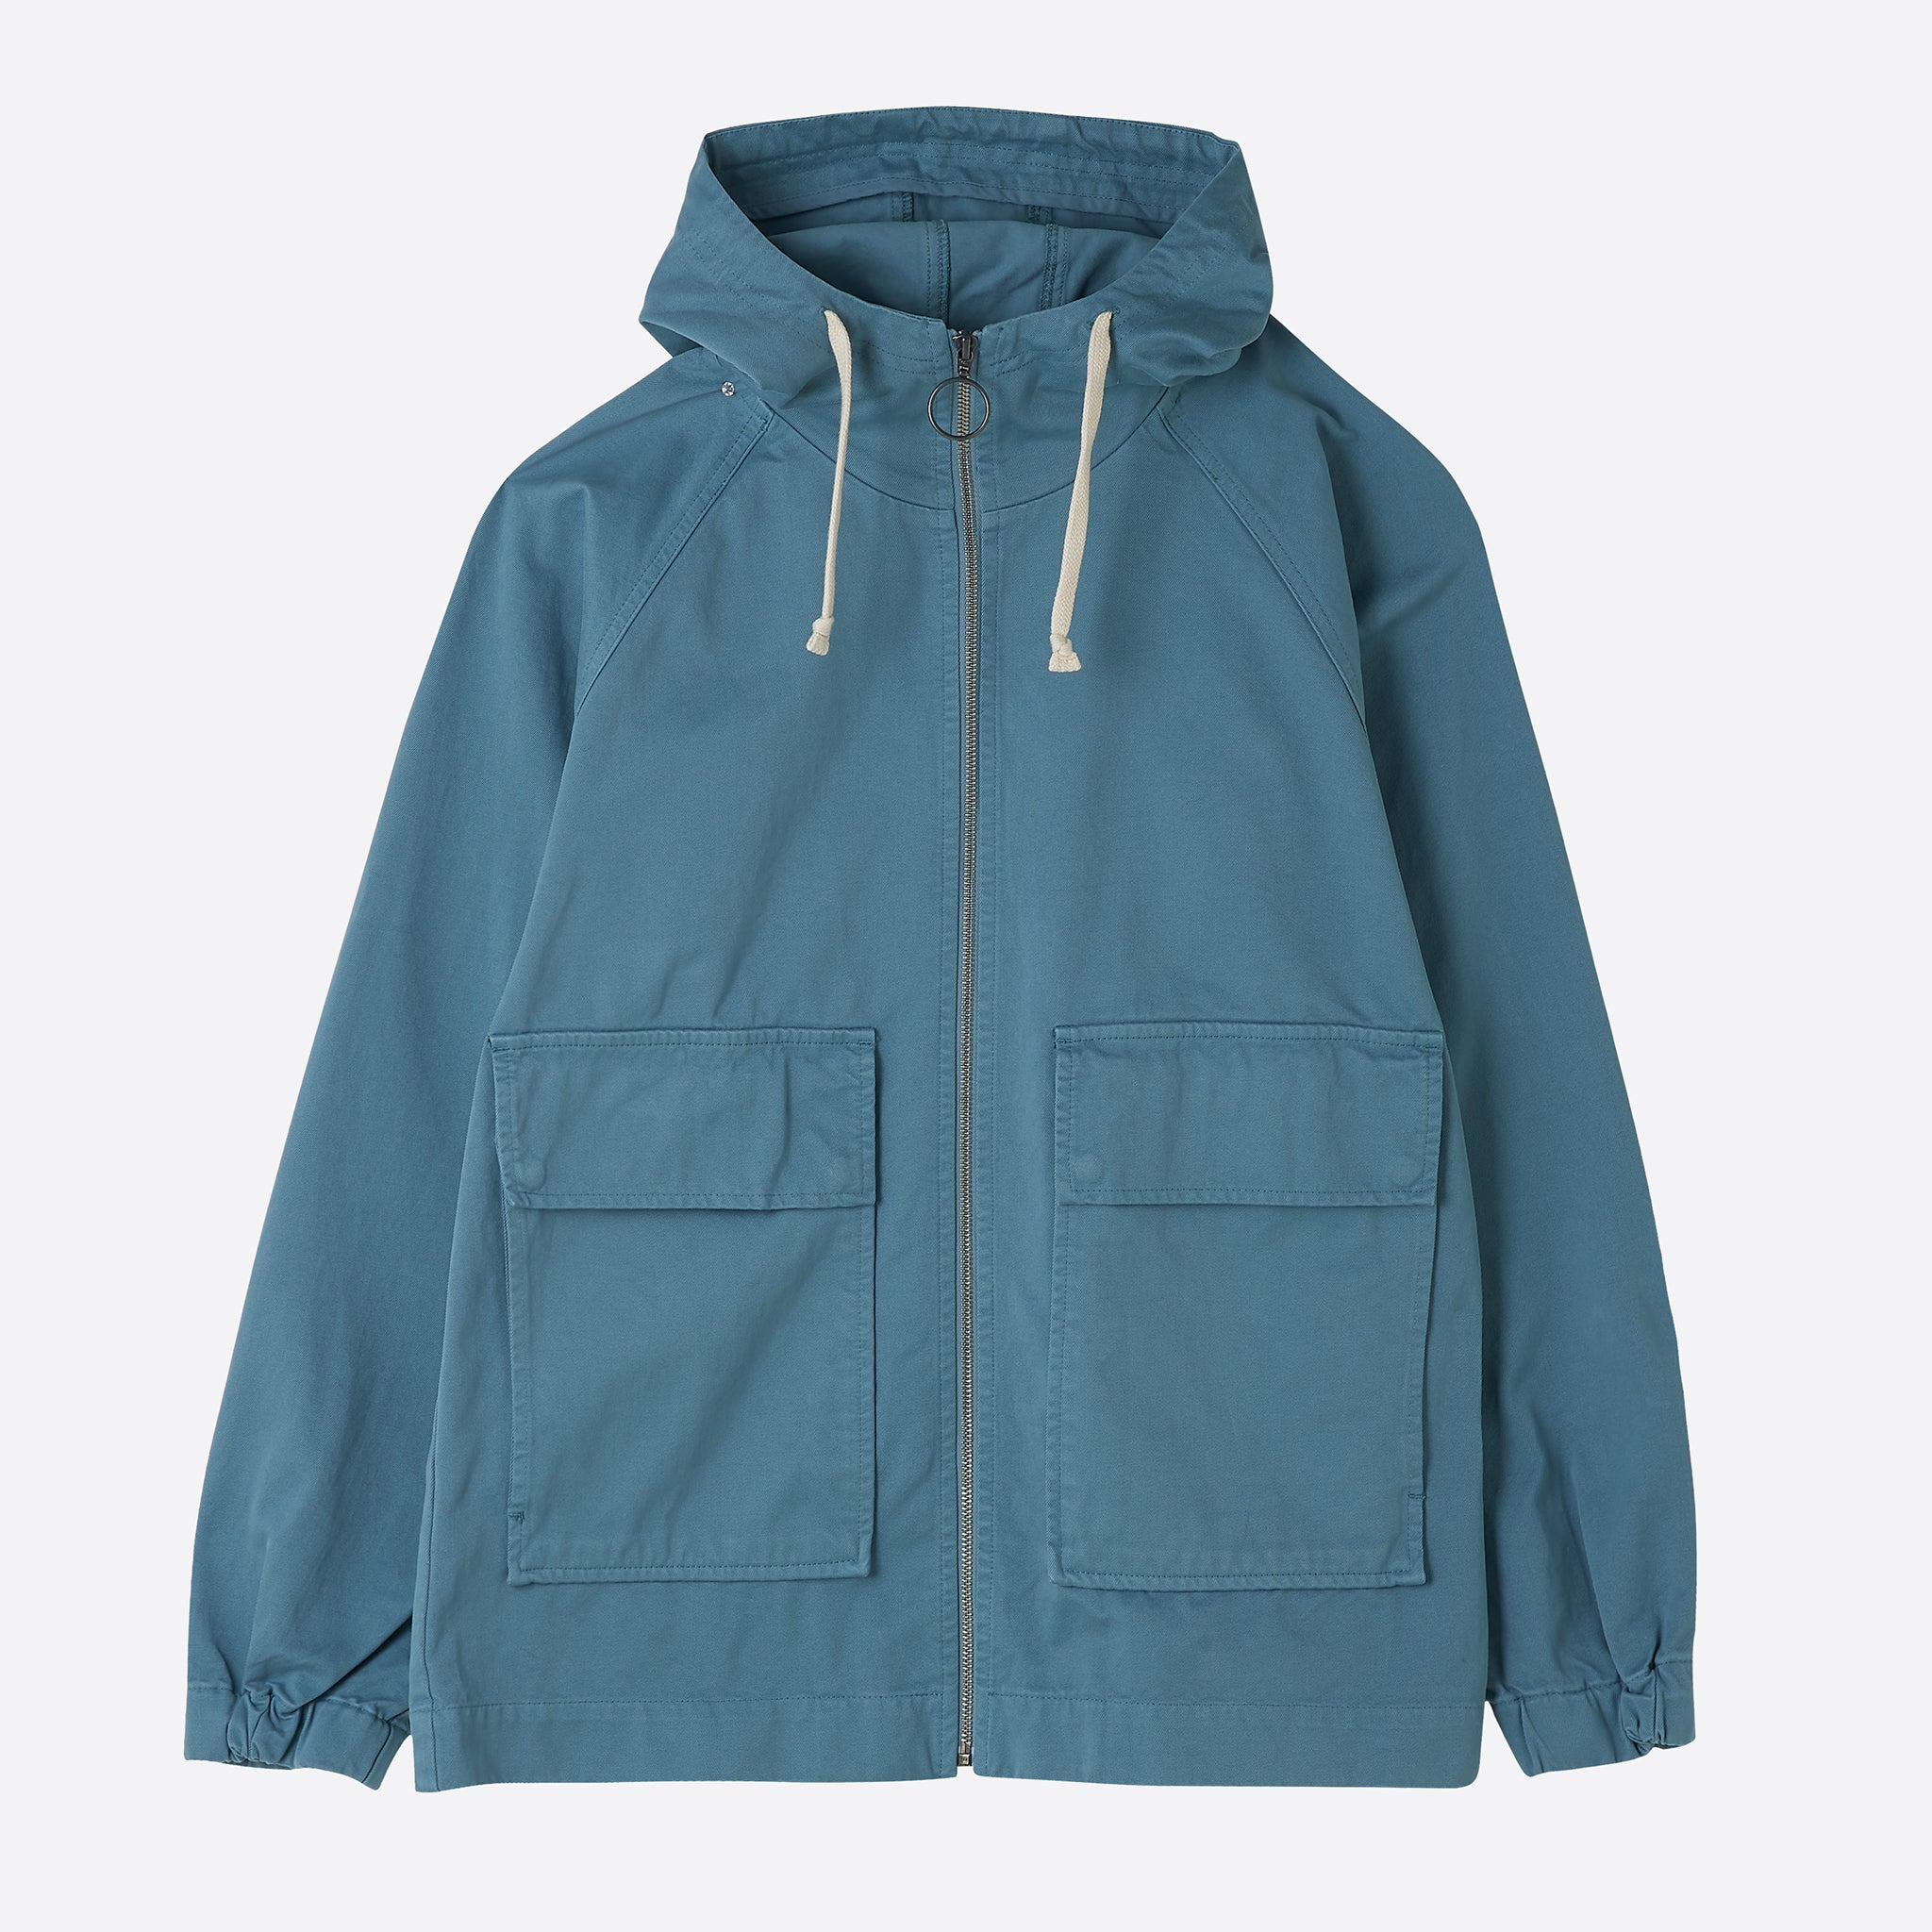 OUTLAND WB3 Jacket in Blue